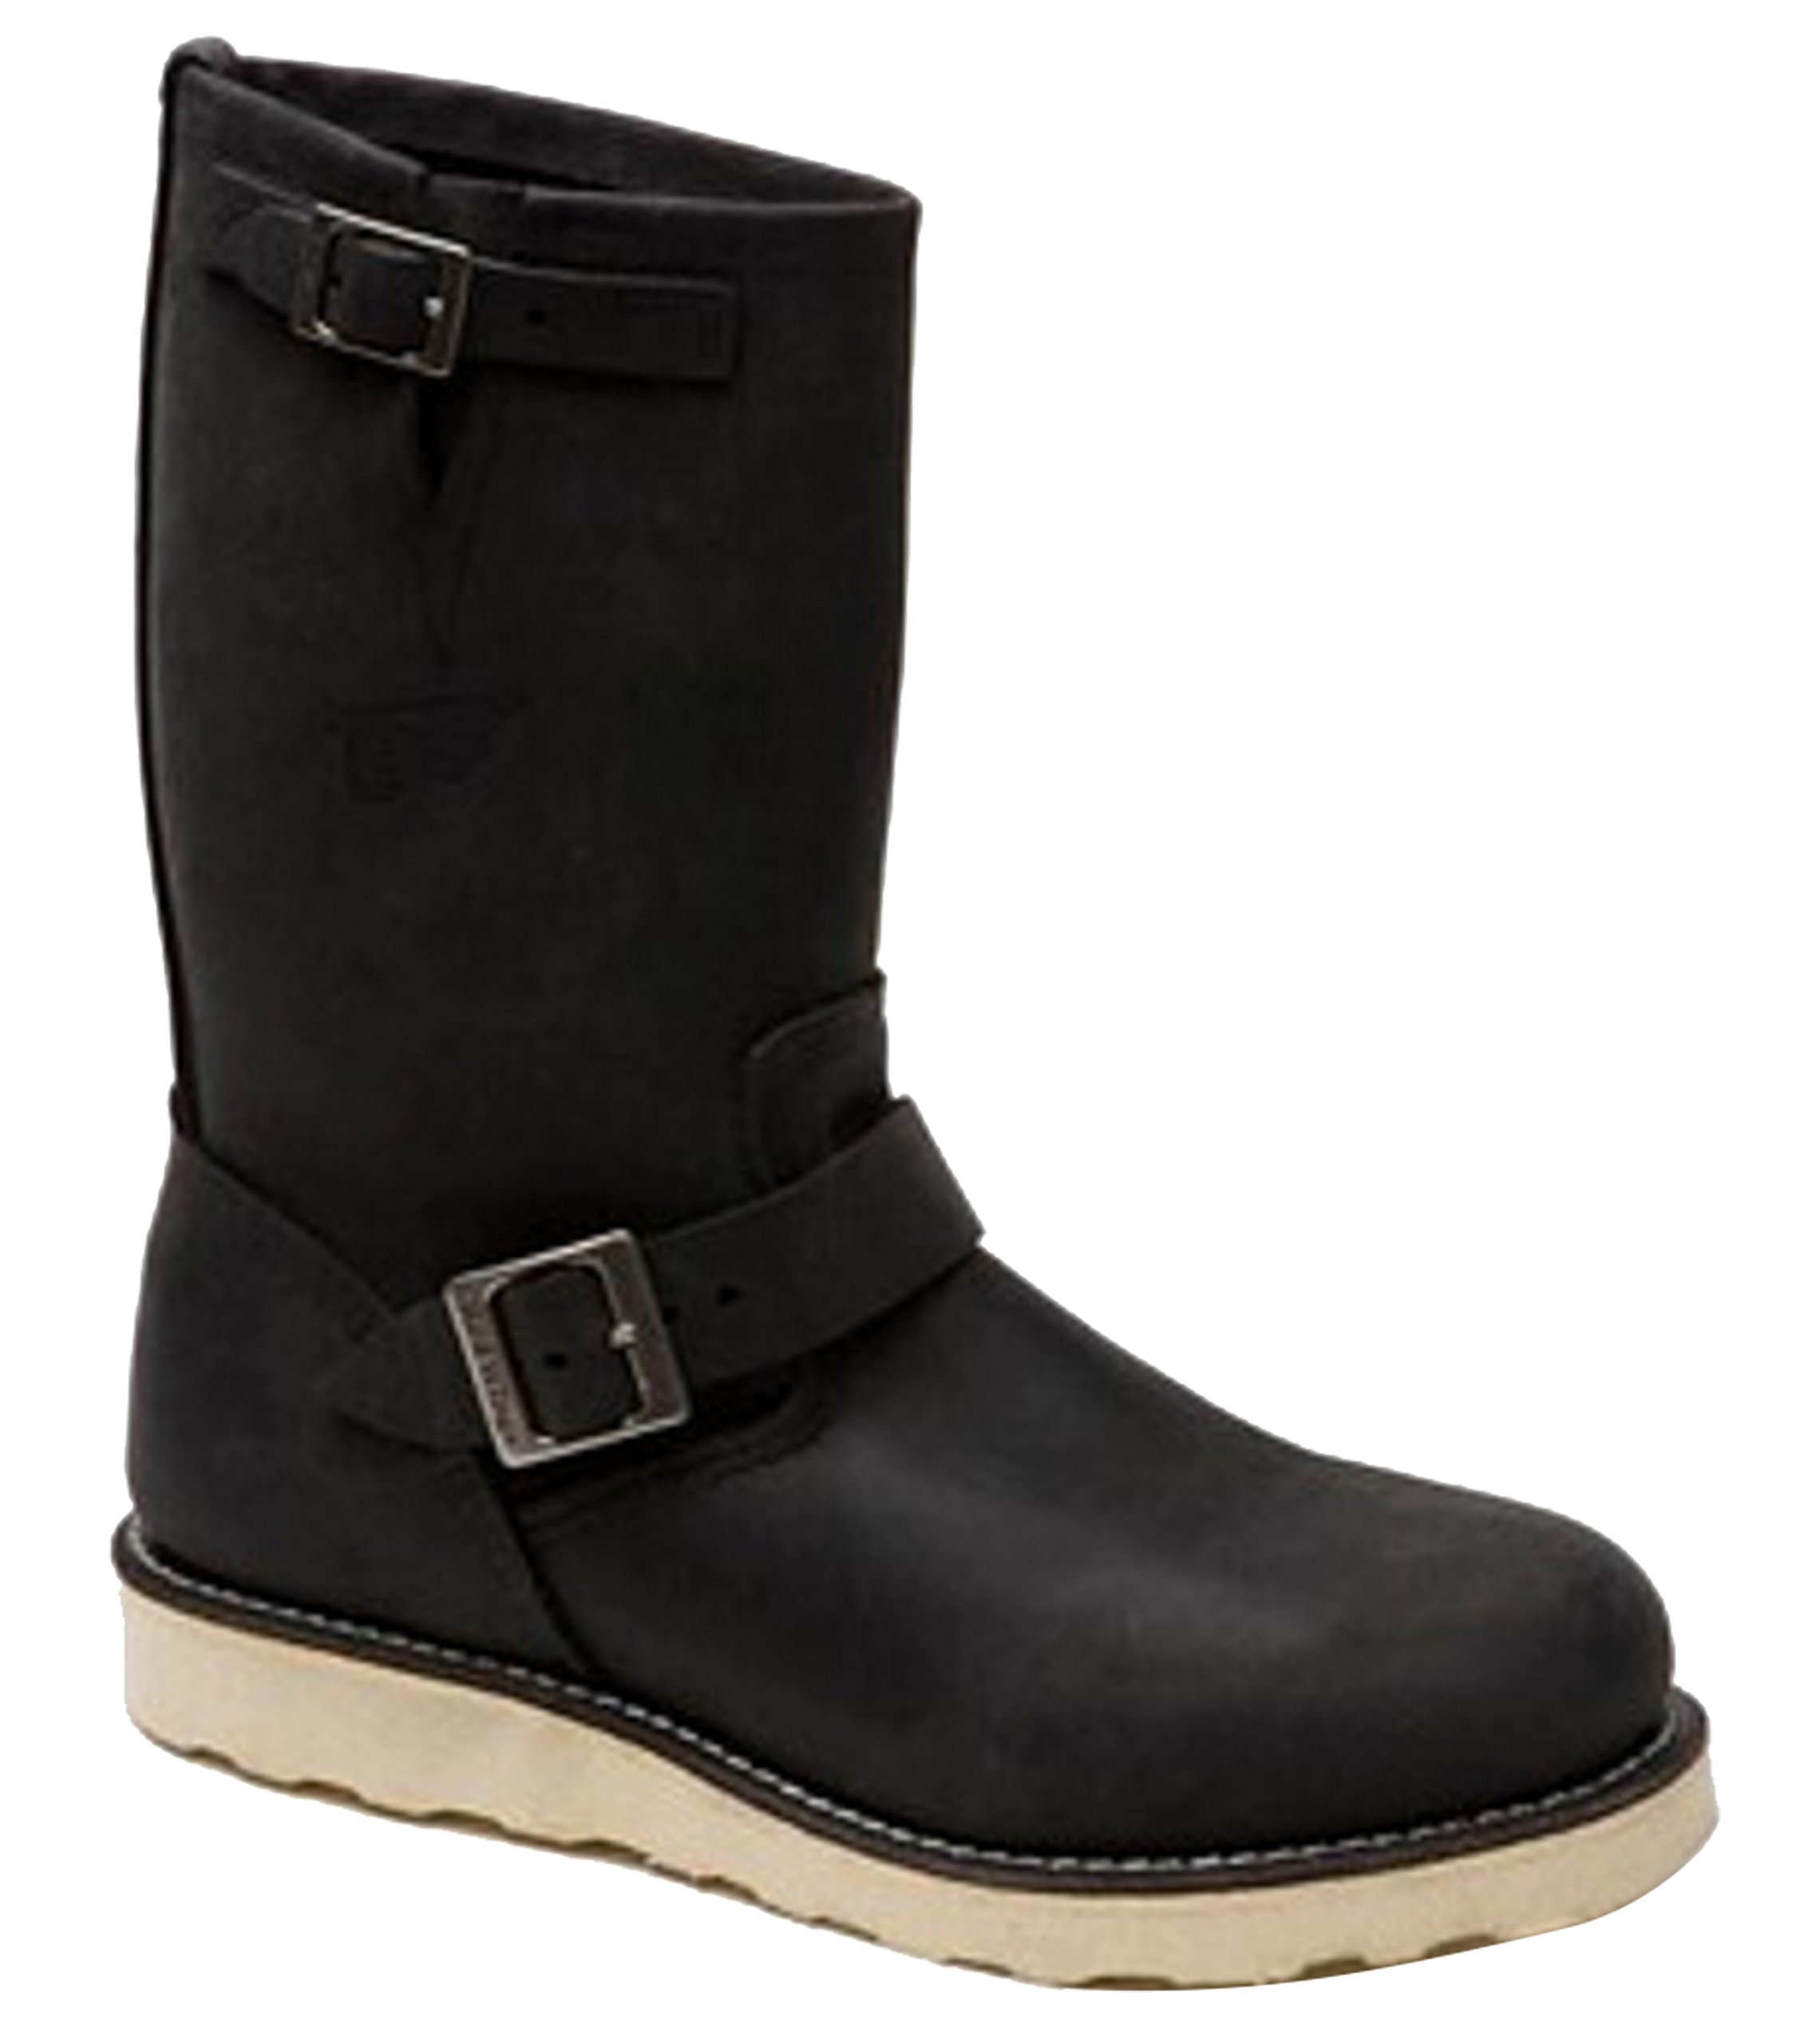 Red Wing Shoes 02974-2 Black 11'' Leather Engineer Boots (4 US) UK 3 EU 35.5 Width D (Medium) by Red Wing Shoes